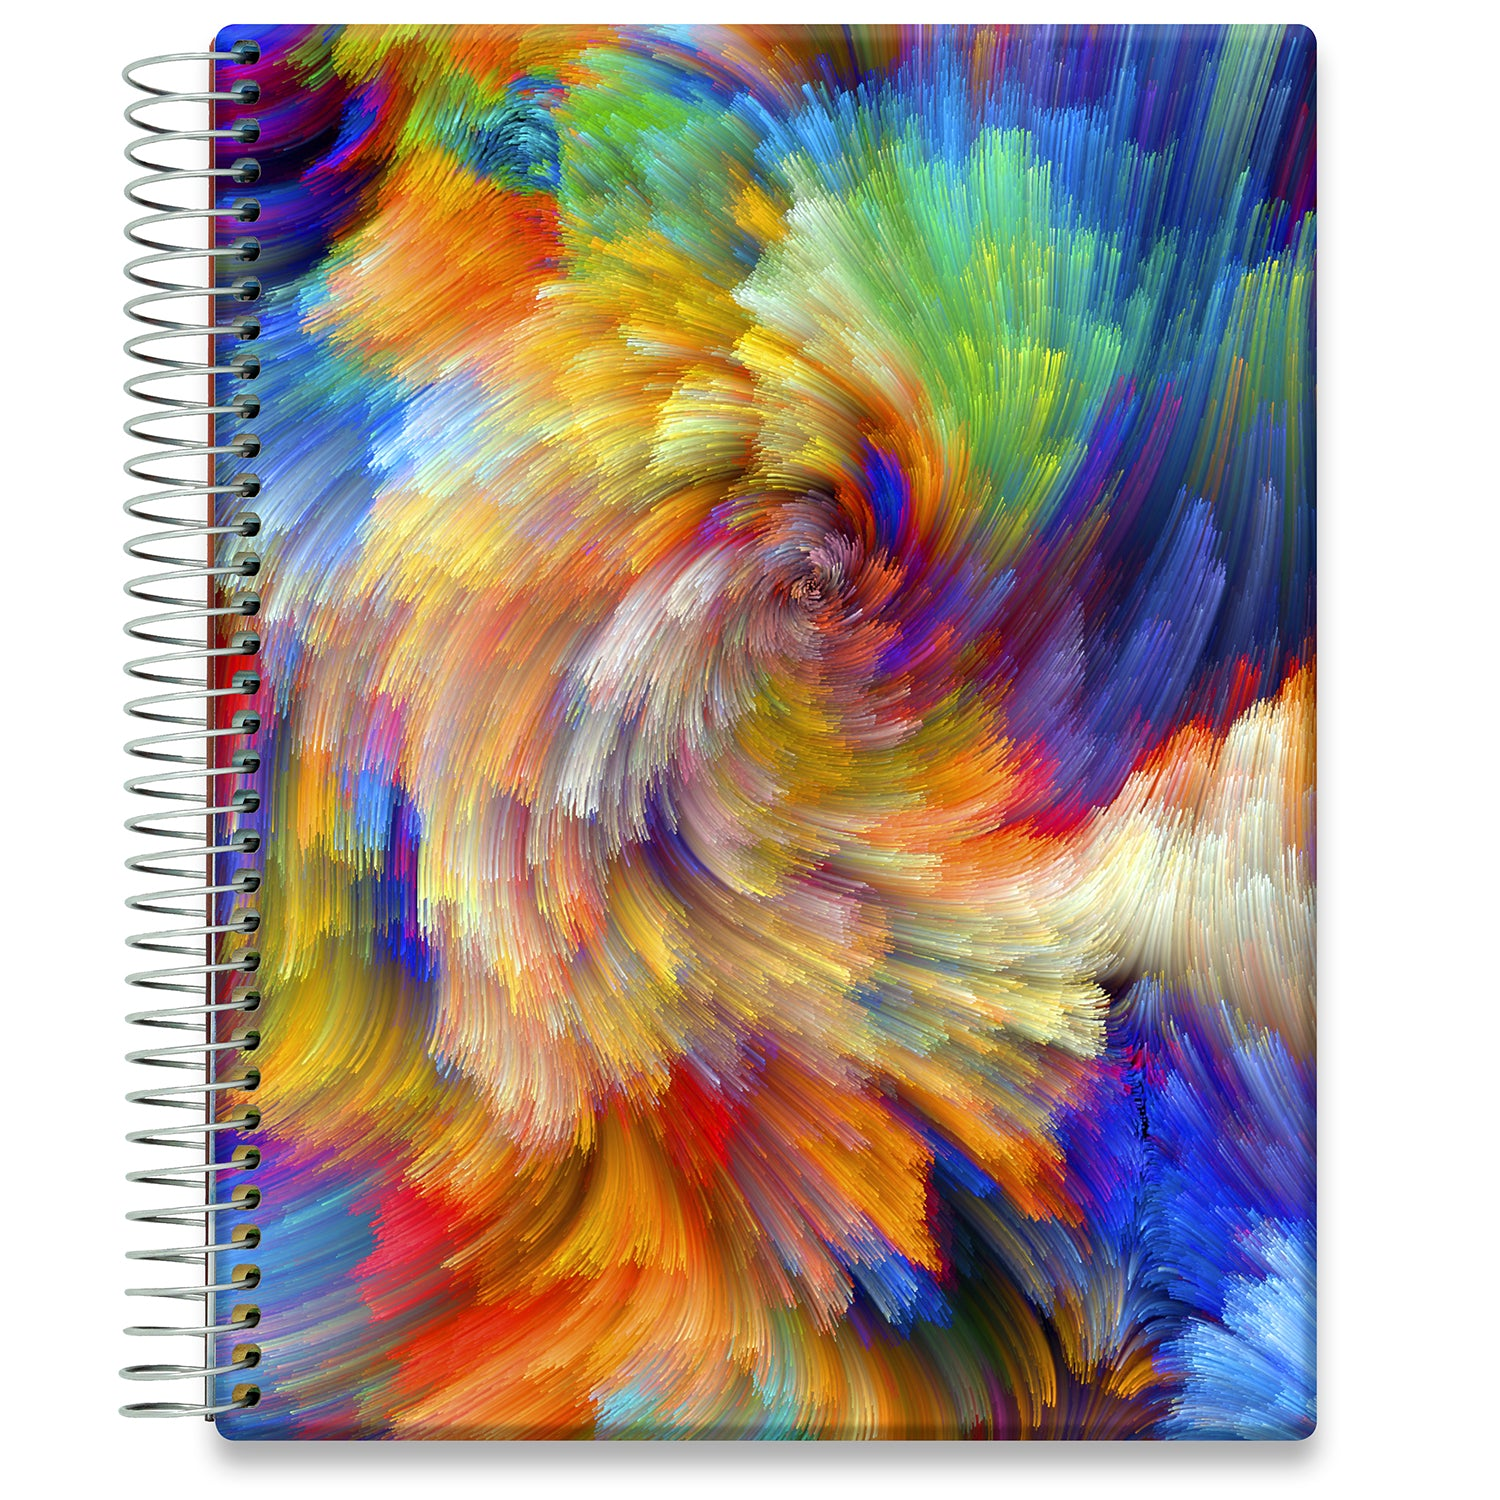 Planner 2021-2022 • April 2021 to June 2022 Academic Year • 8.5x11 Hardcover • Colorsplash